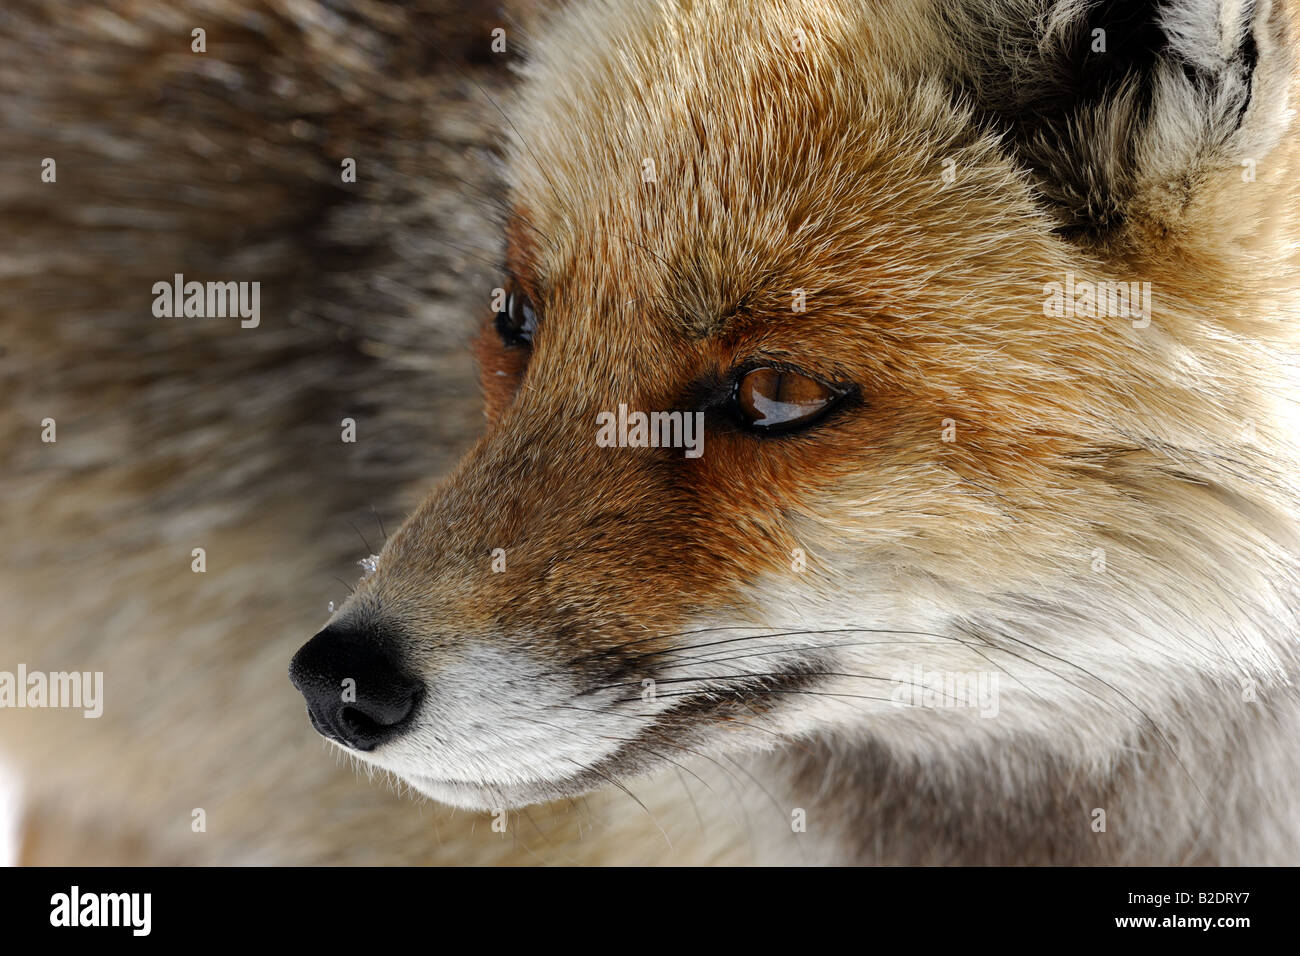 fox foxes red Vulpes vulpes canidae mammal mountain winter snow snowfall wood Italy volpe rossa Vulpes vulpes canidi - Stock Image